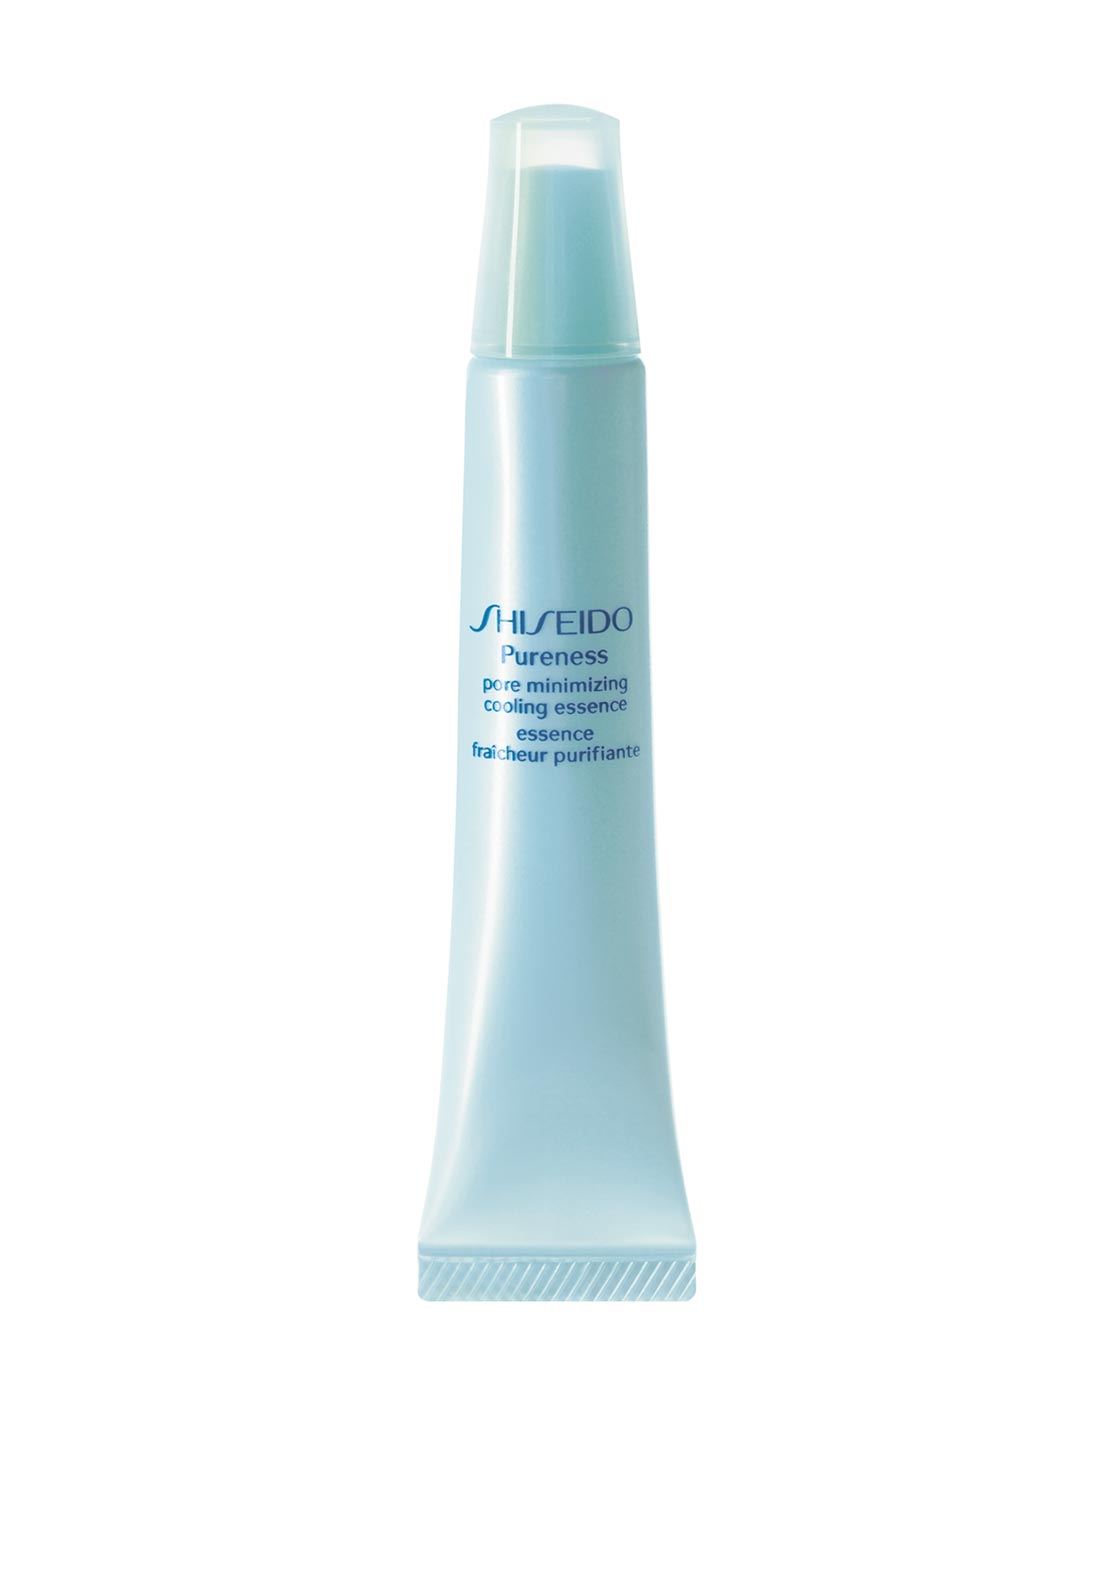 Shiseido Pureness Pore Minimizing Cooling Essence, 30ml